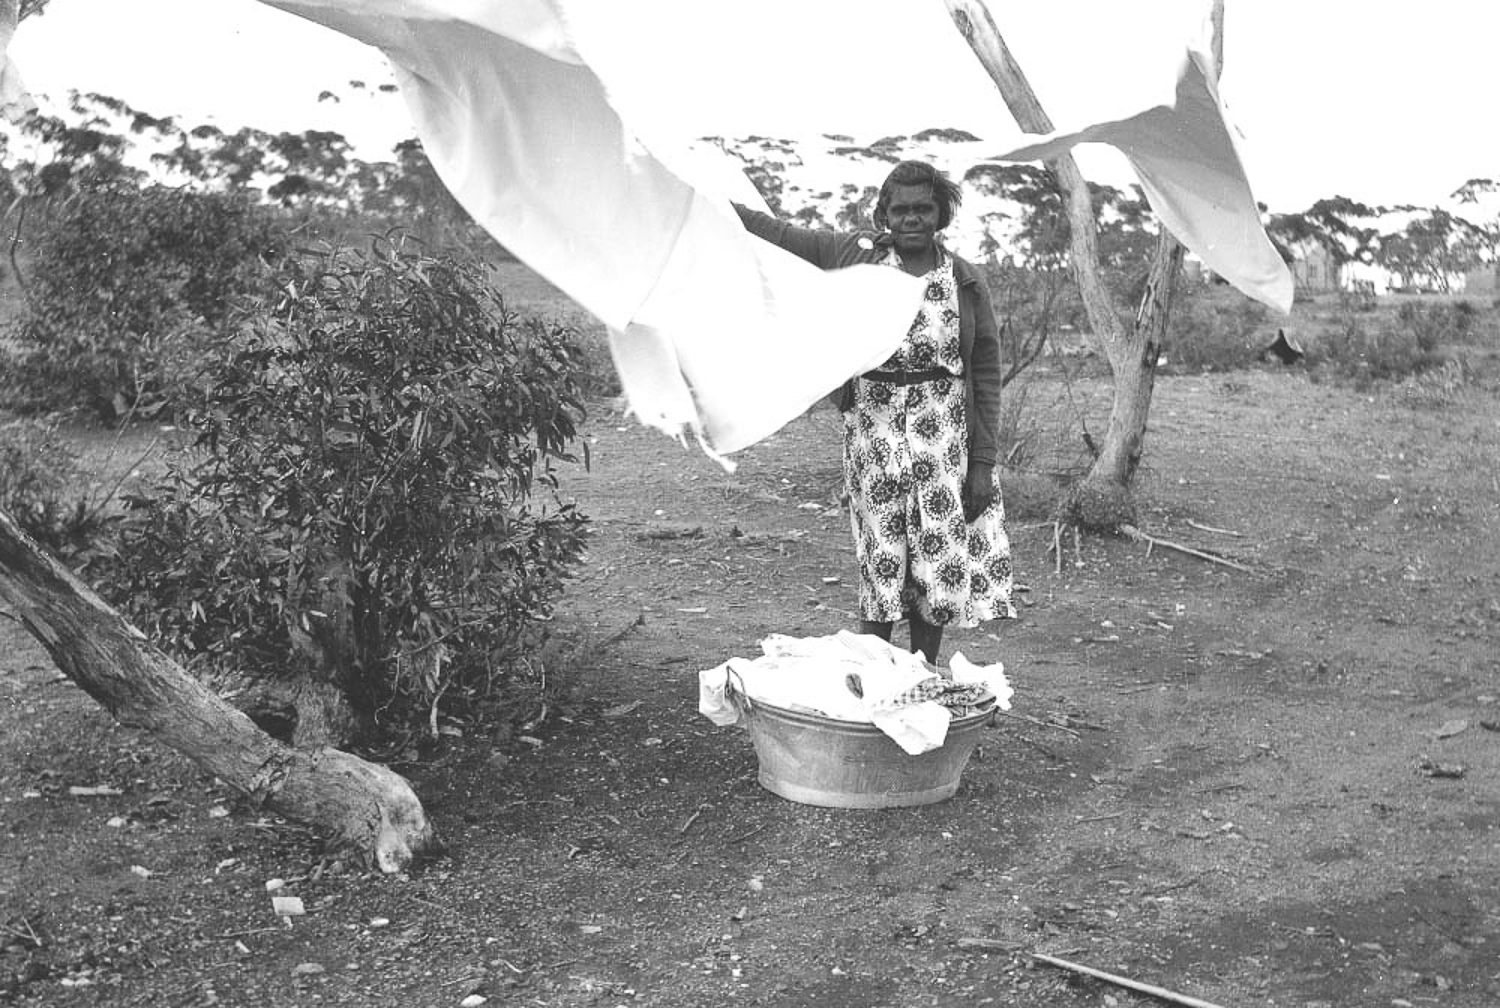 Marjorie Watson hanging out the mission washing in Cundeelee. Anangu women were often given households chores to do as part of mission life, as part of the assimilation process, and were often sent to farms to work as household labourers, for which they were never paid.